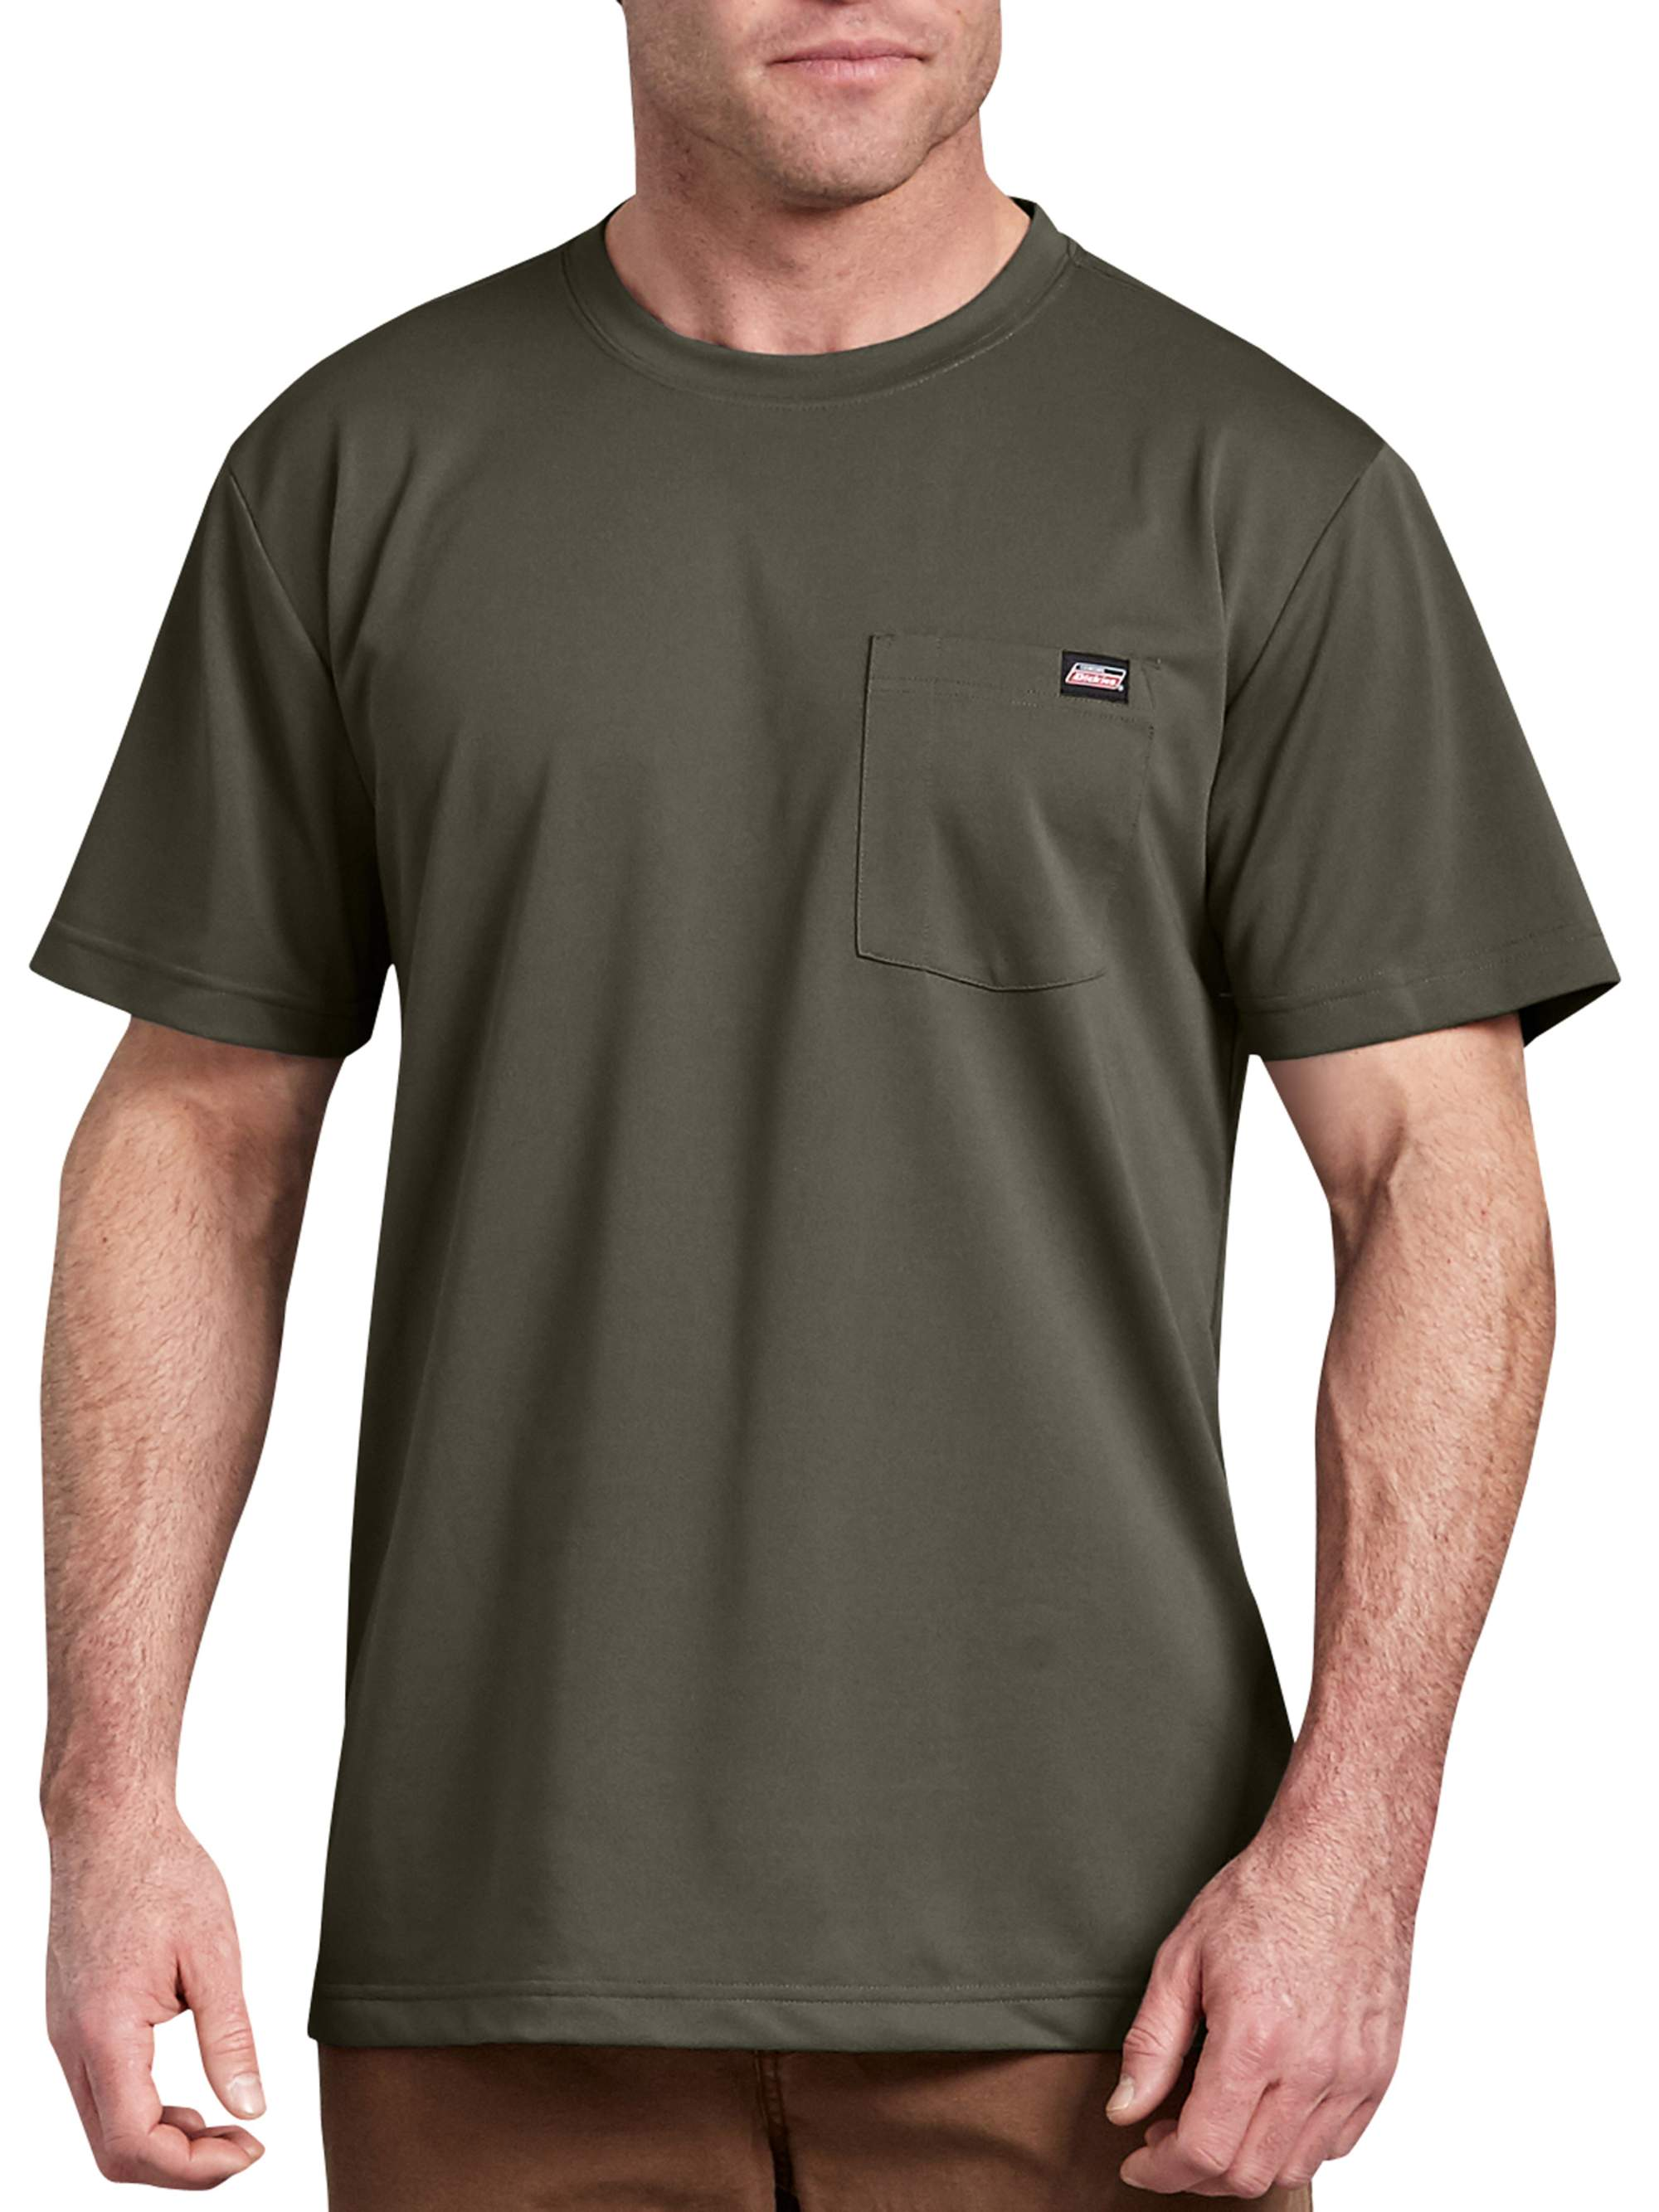 Men's Short Sleeve Performance Pocket T-Shirt